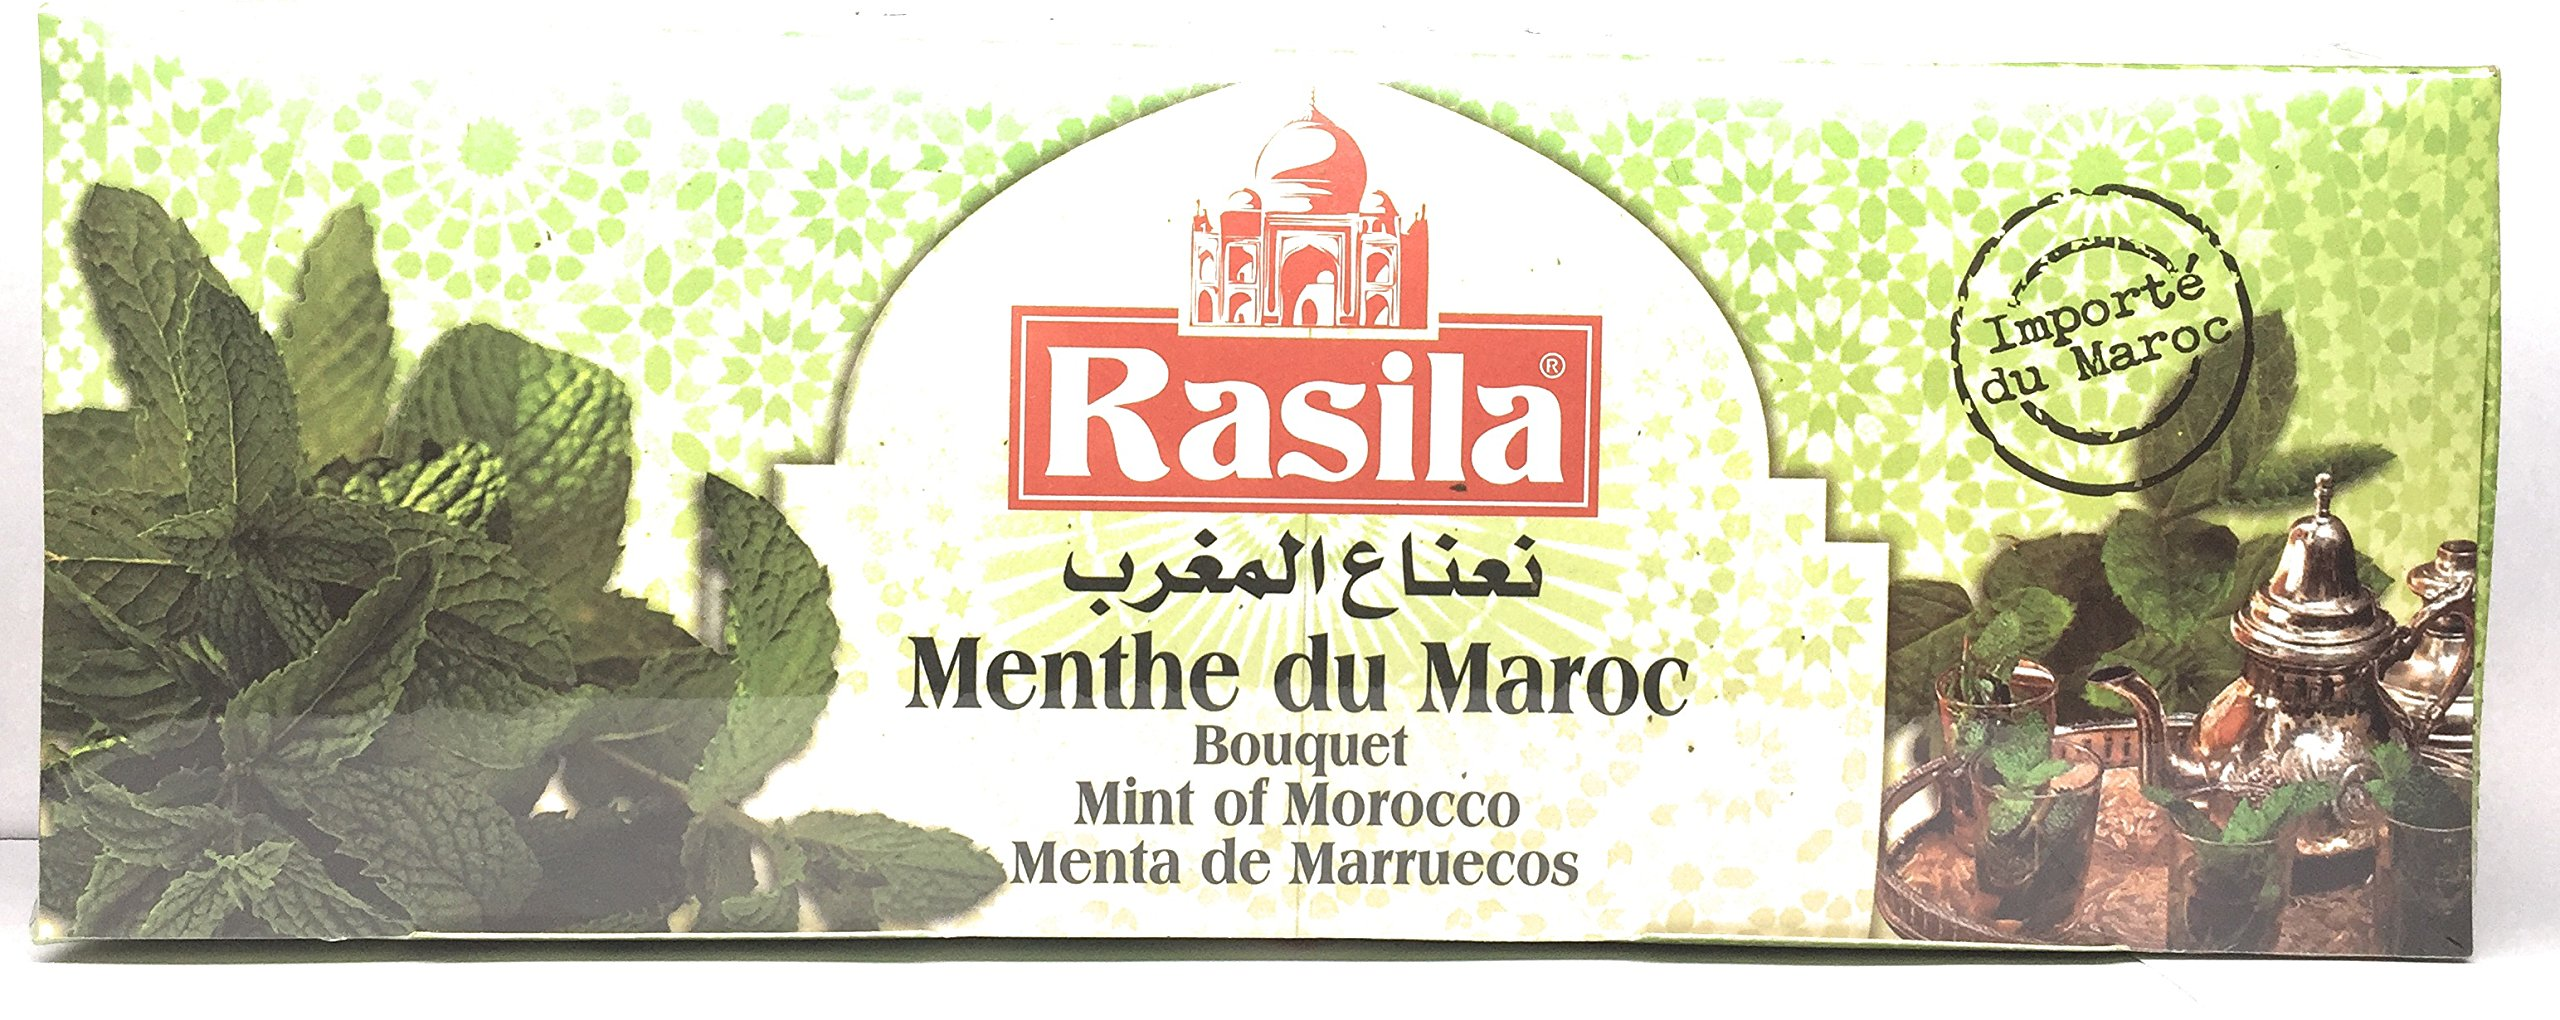 Rasila Moroccan Dried Mint Bouquet, The Whole Bouquet Dried From The Original Format. Culinary Herb, Natural. 1.41 Ounce- 40 Gram.